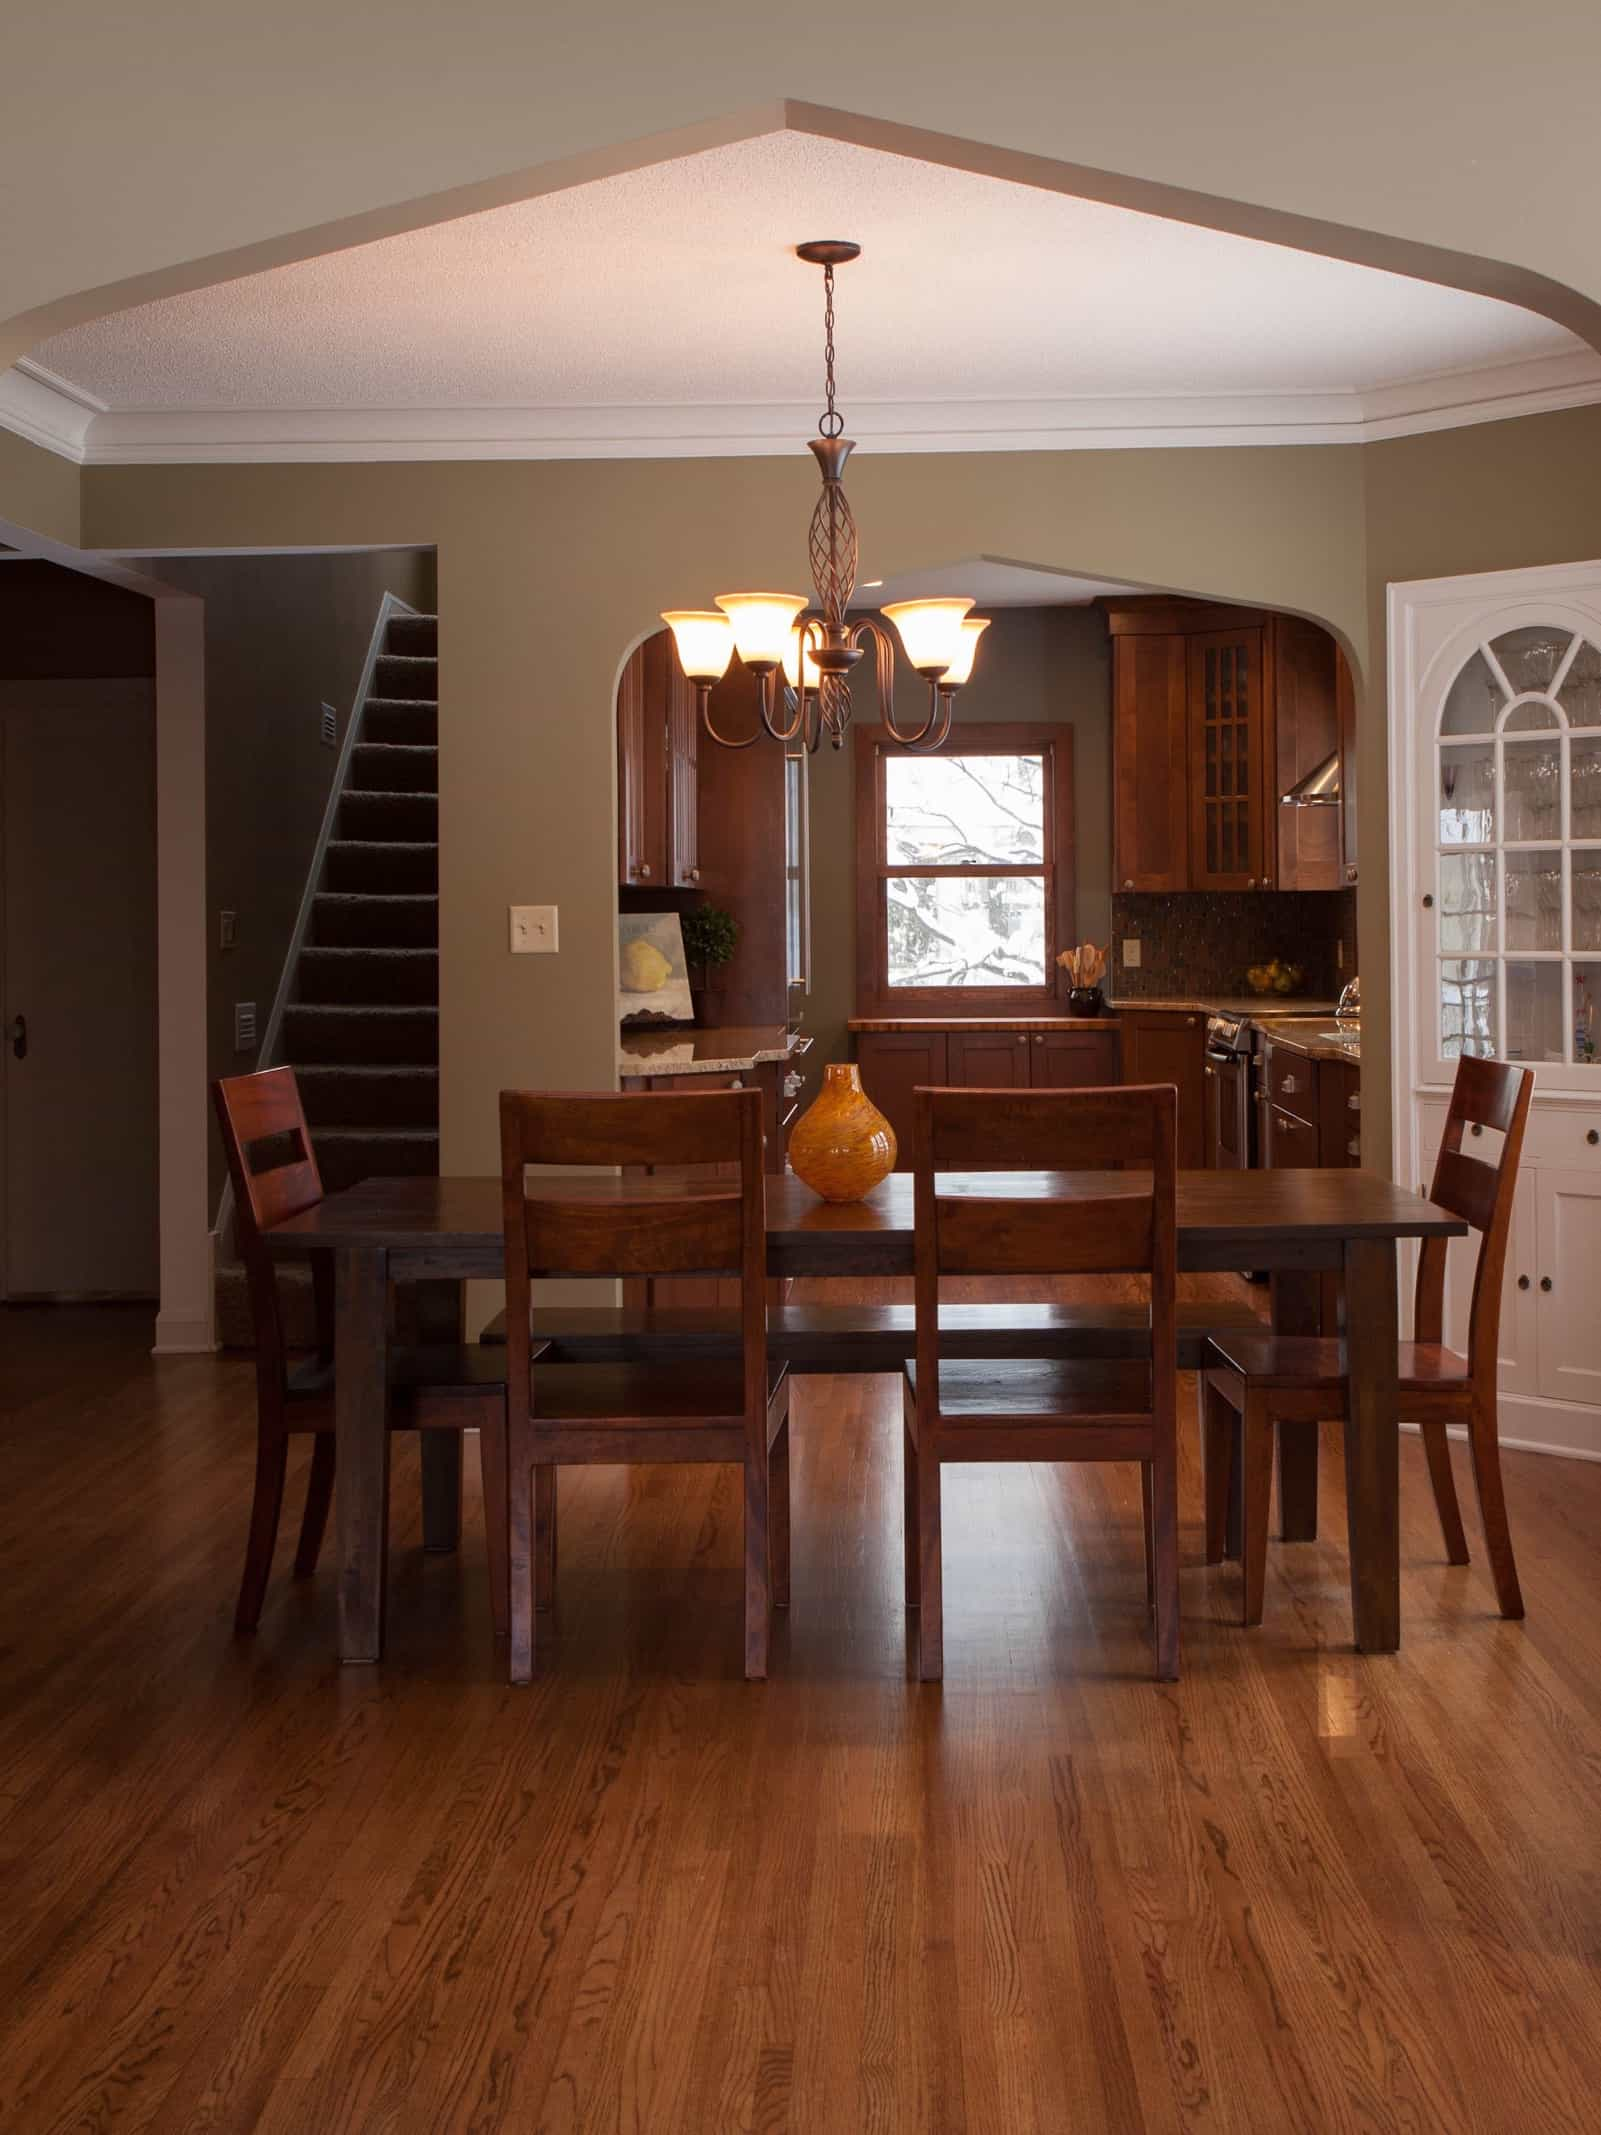 Featured Image of Simple Craftsman Style Dining Room With Wood Furniture